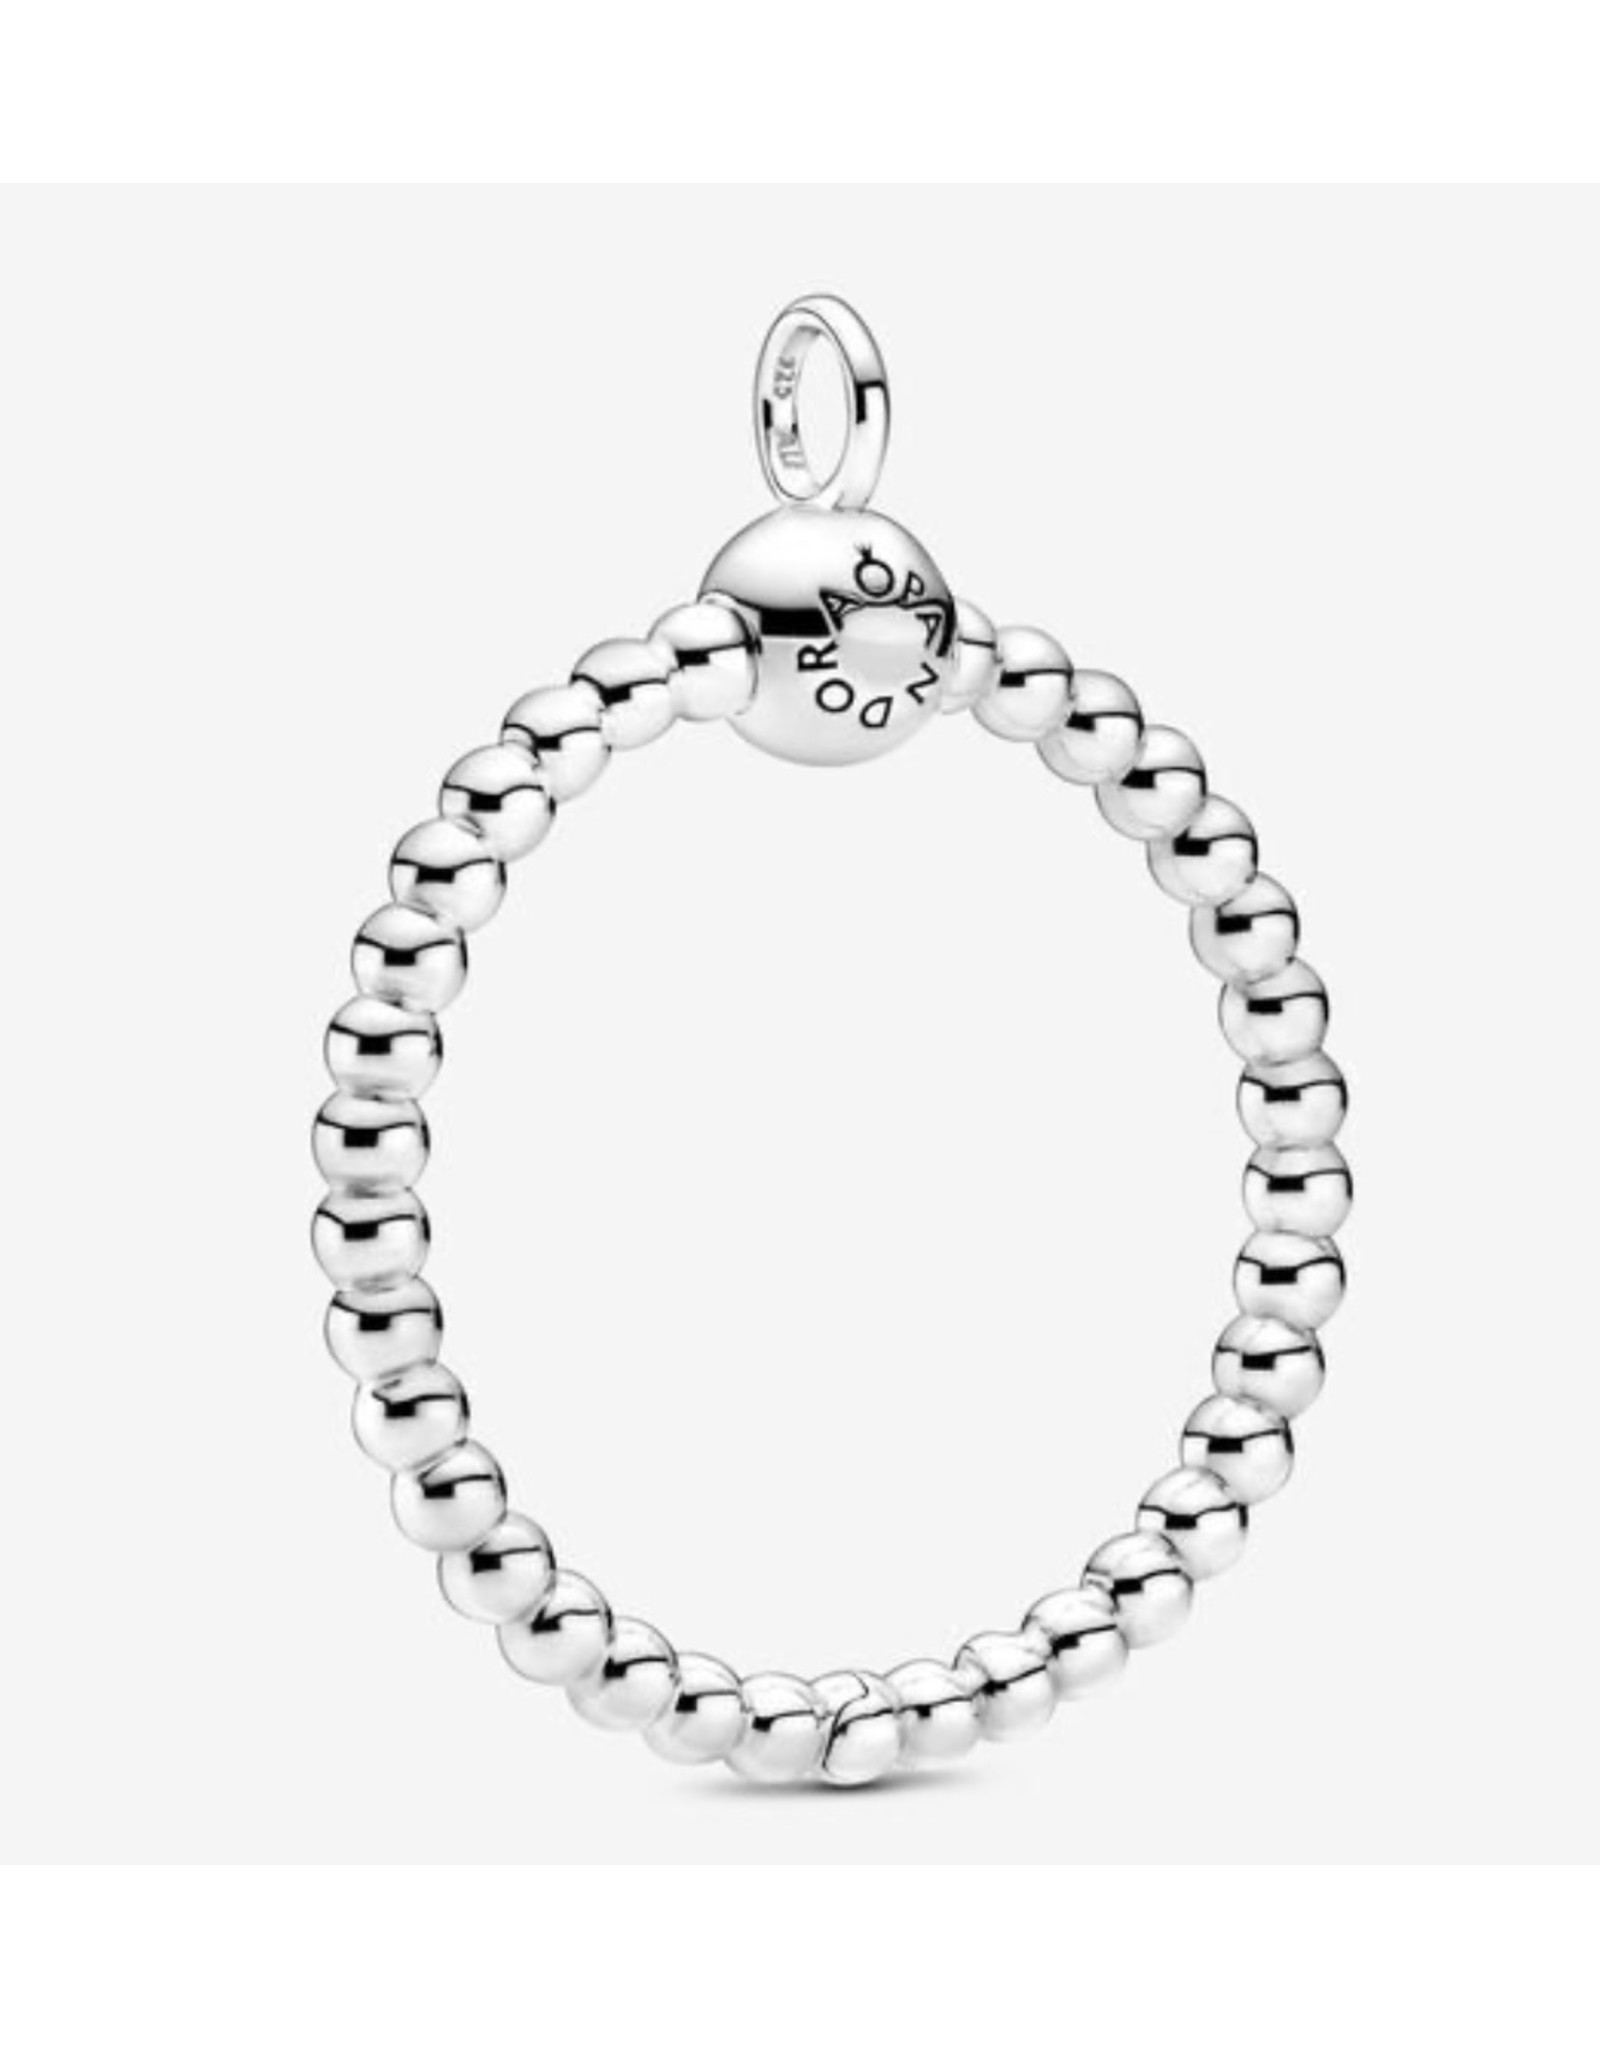 Pandora Pandora Moments Pendant,399106C00, Medium Beaded O Pendant, Sterling Silver